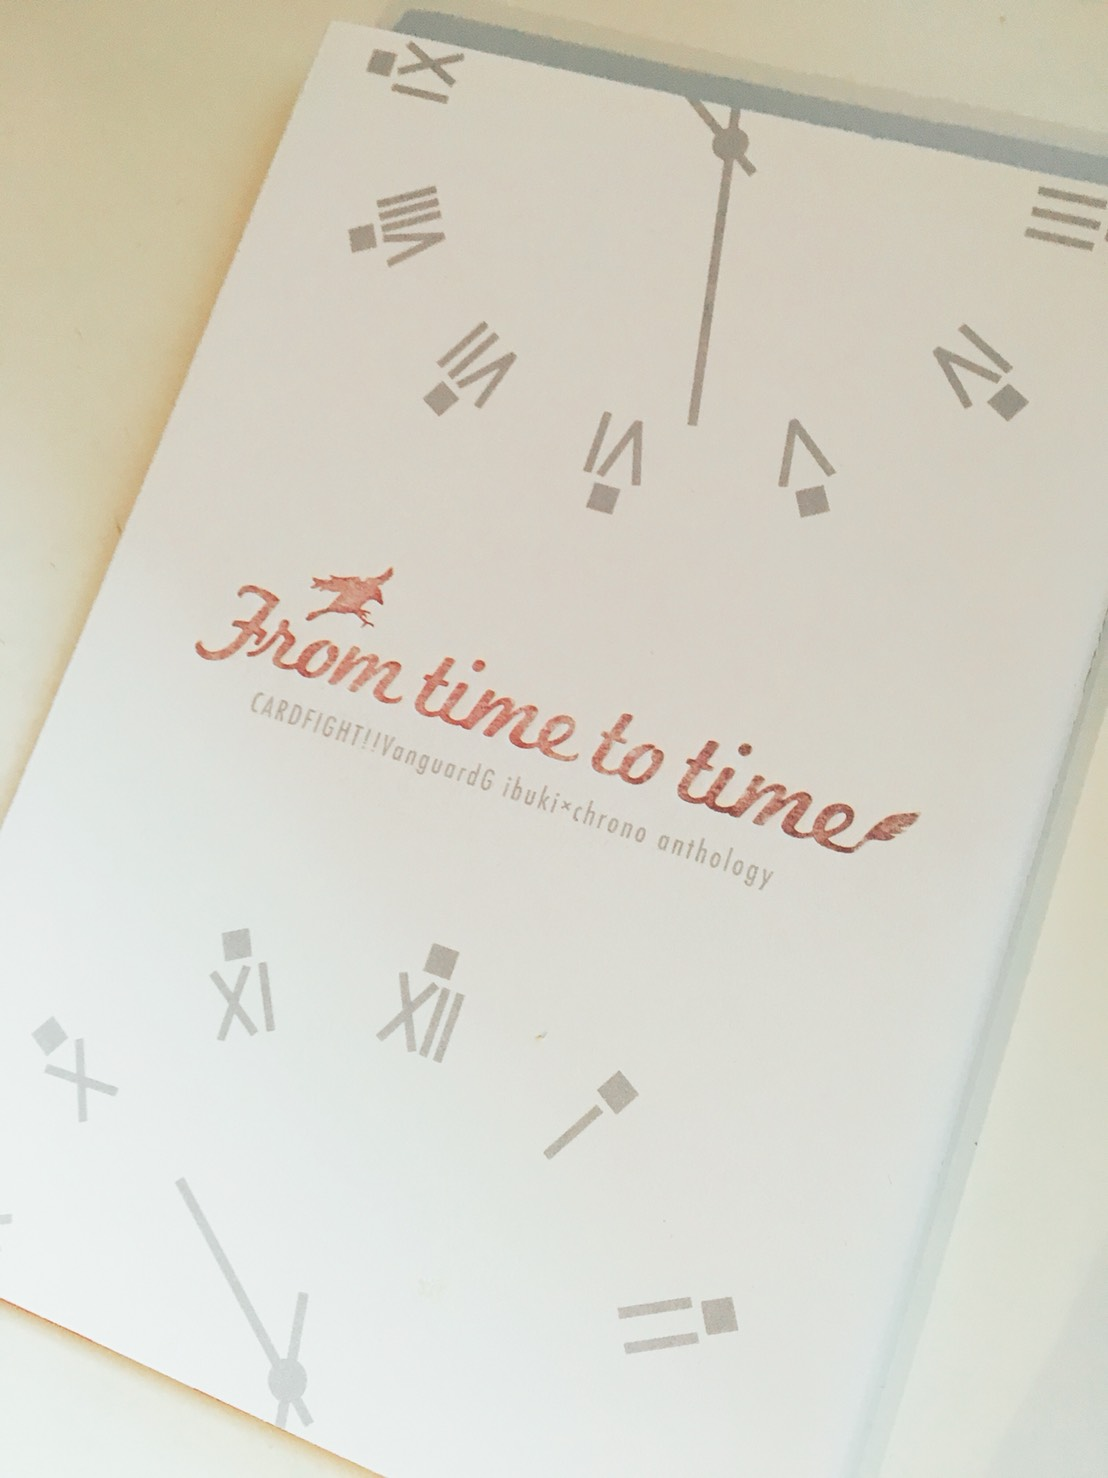 「From time to time」装丁デザイン案